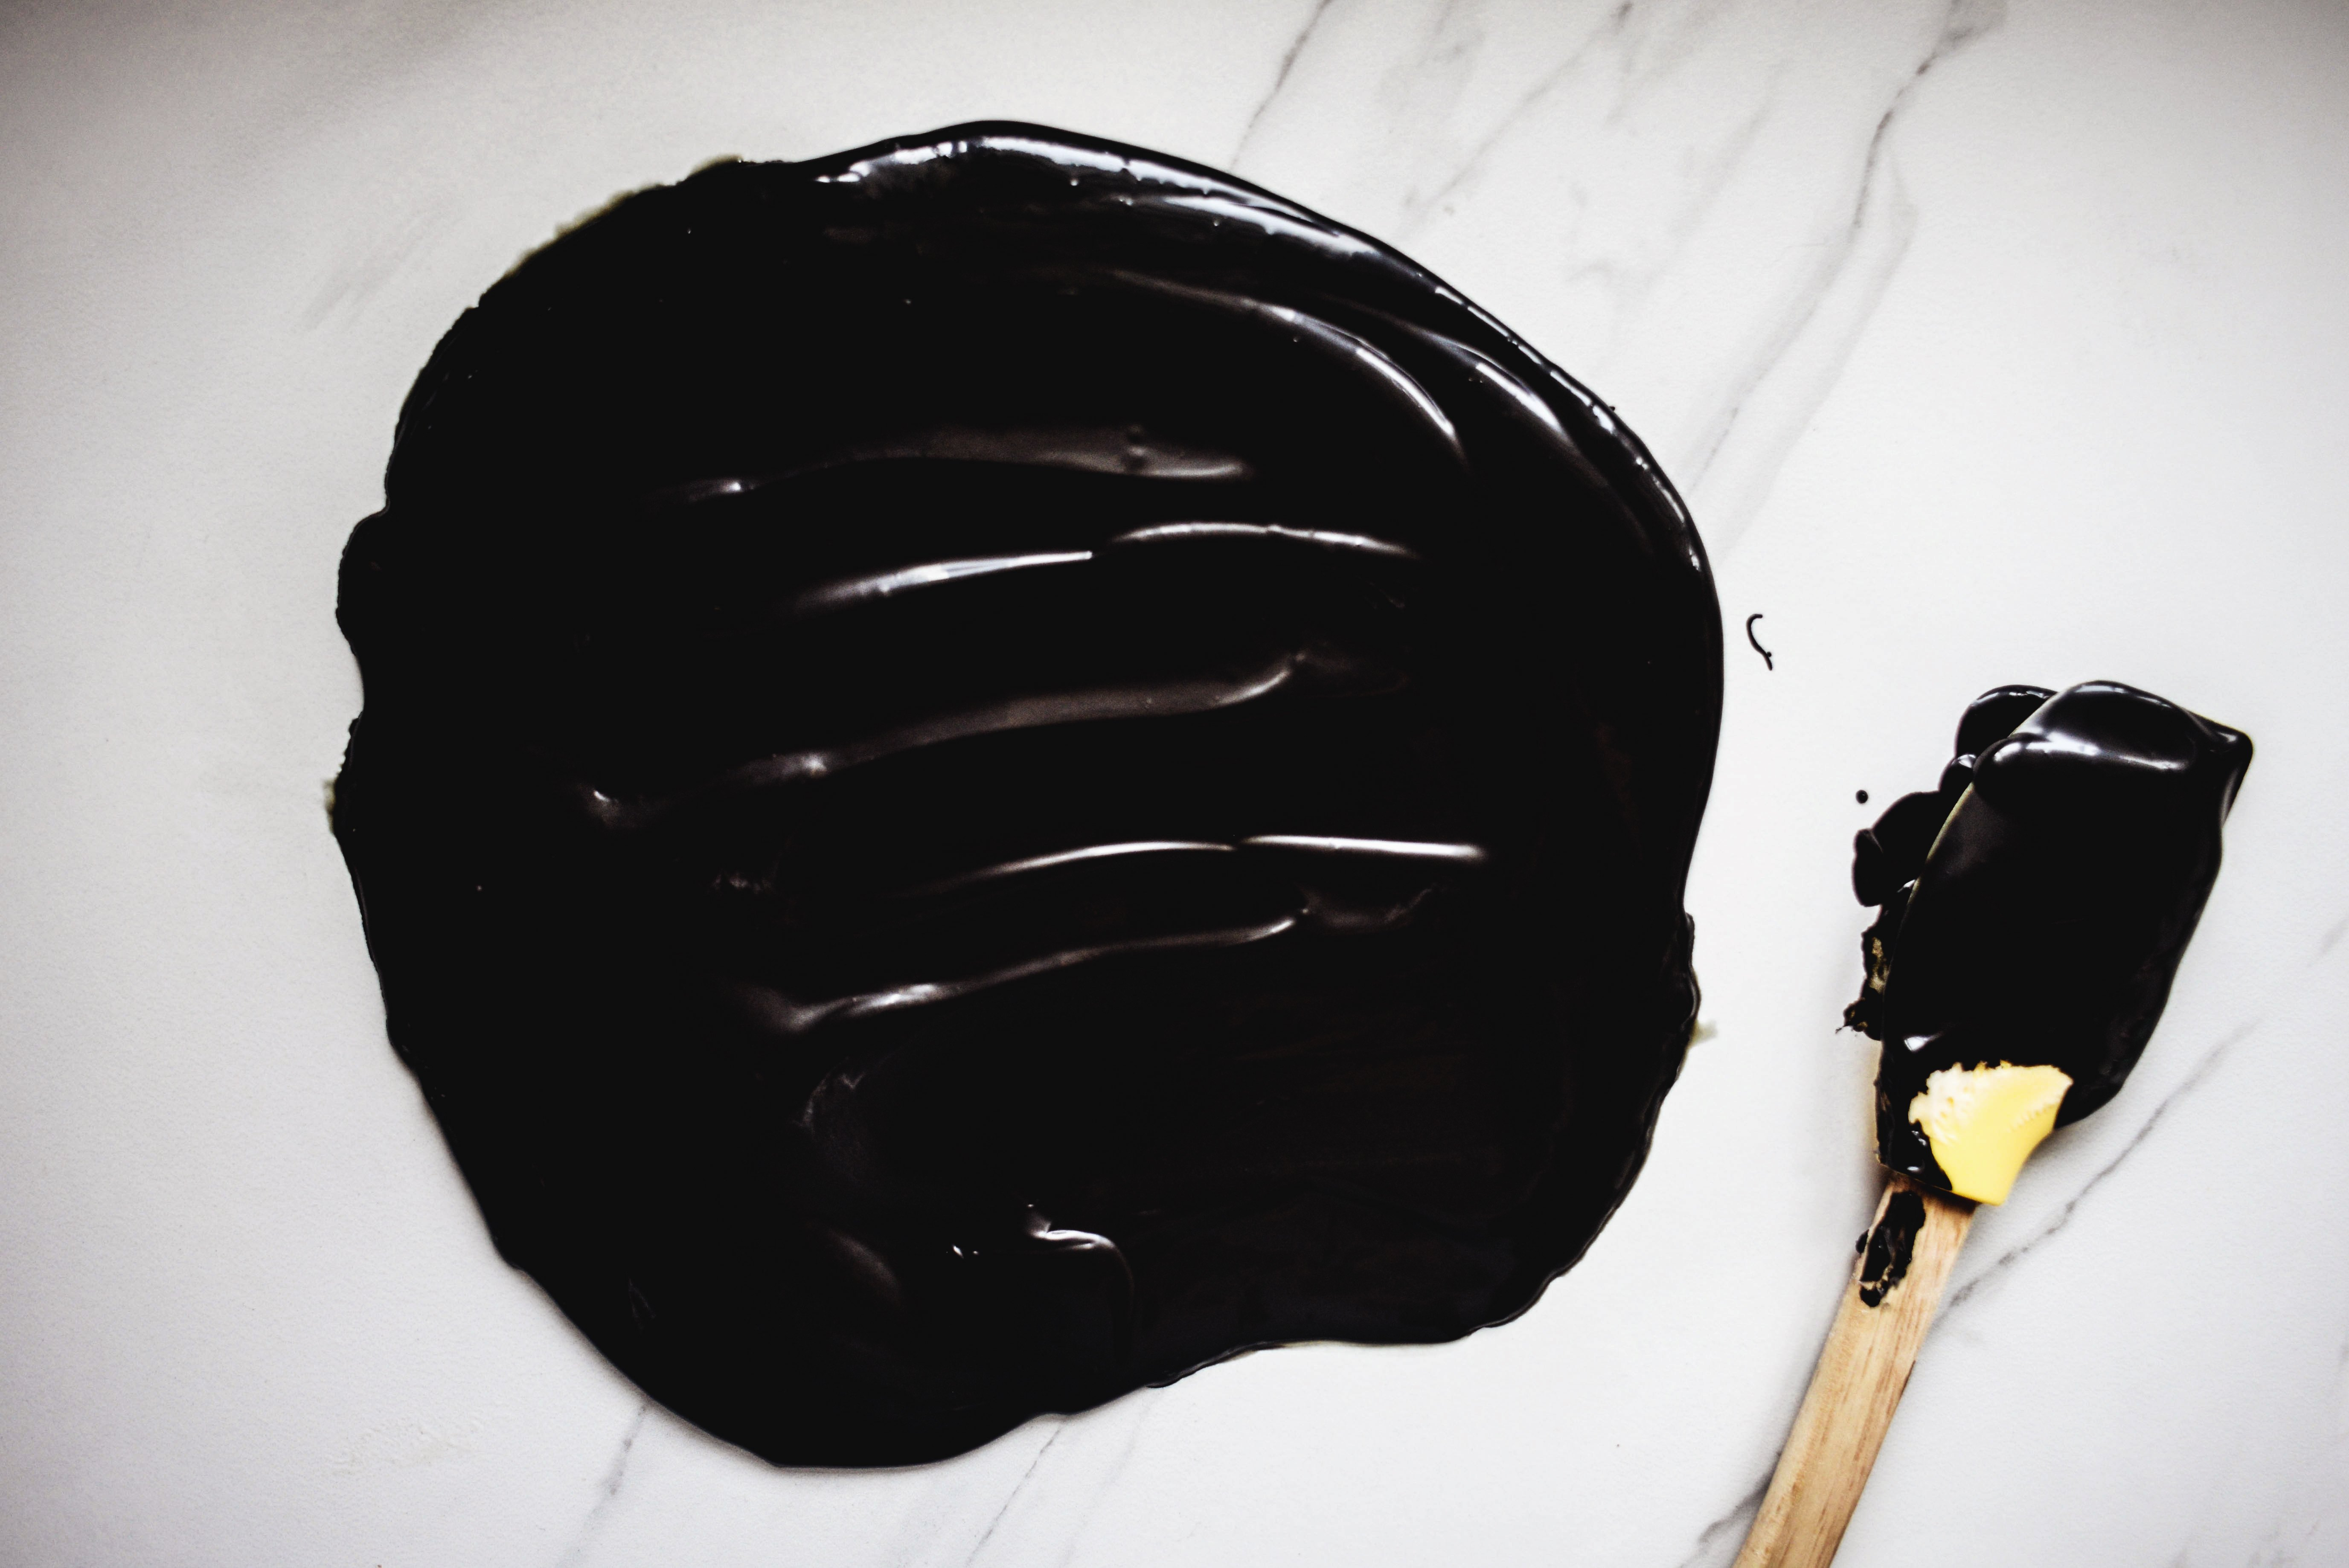 How To Make Black Frosting Using Food Coloring